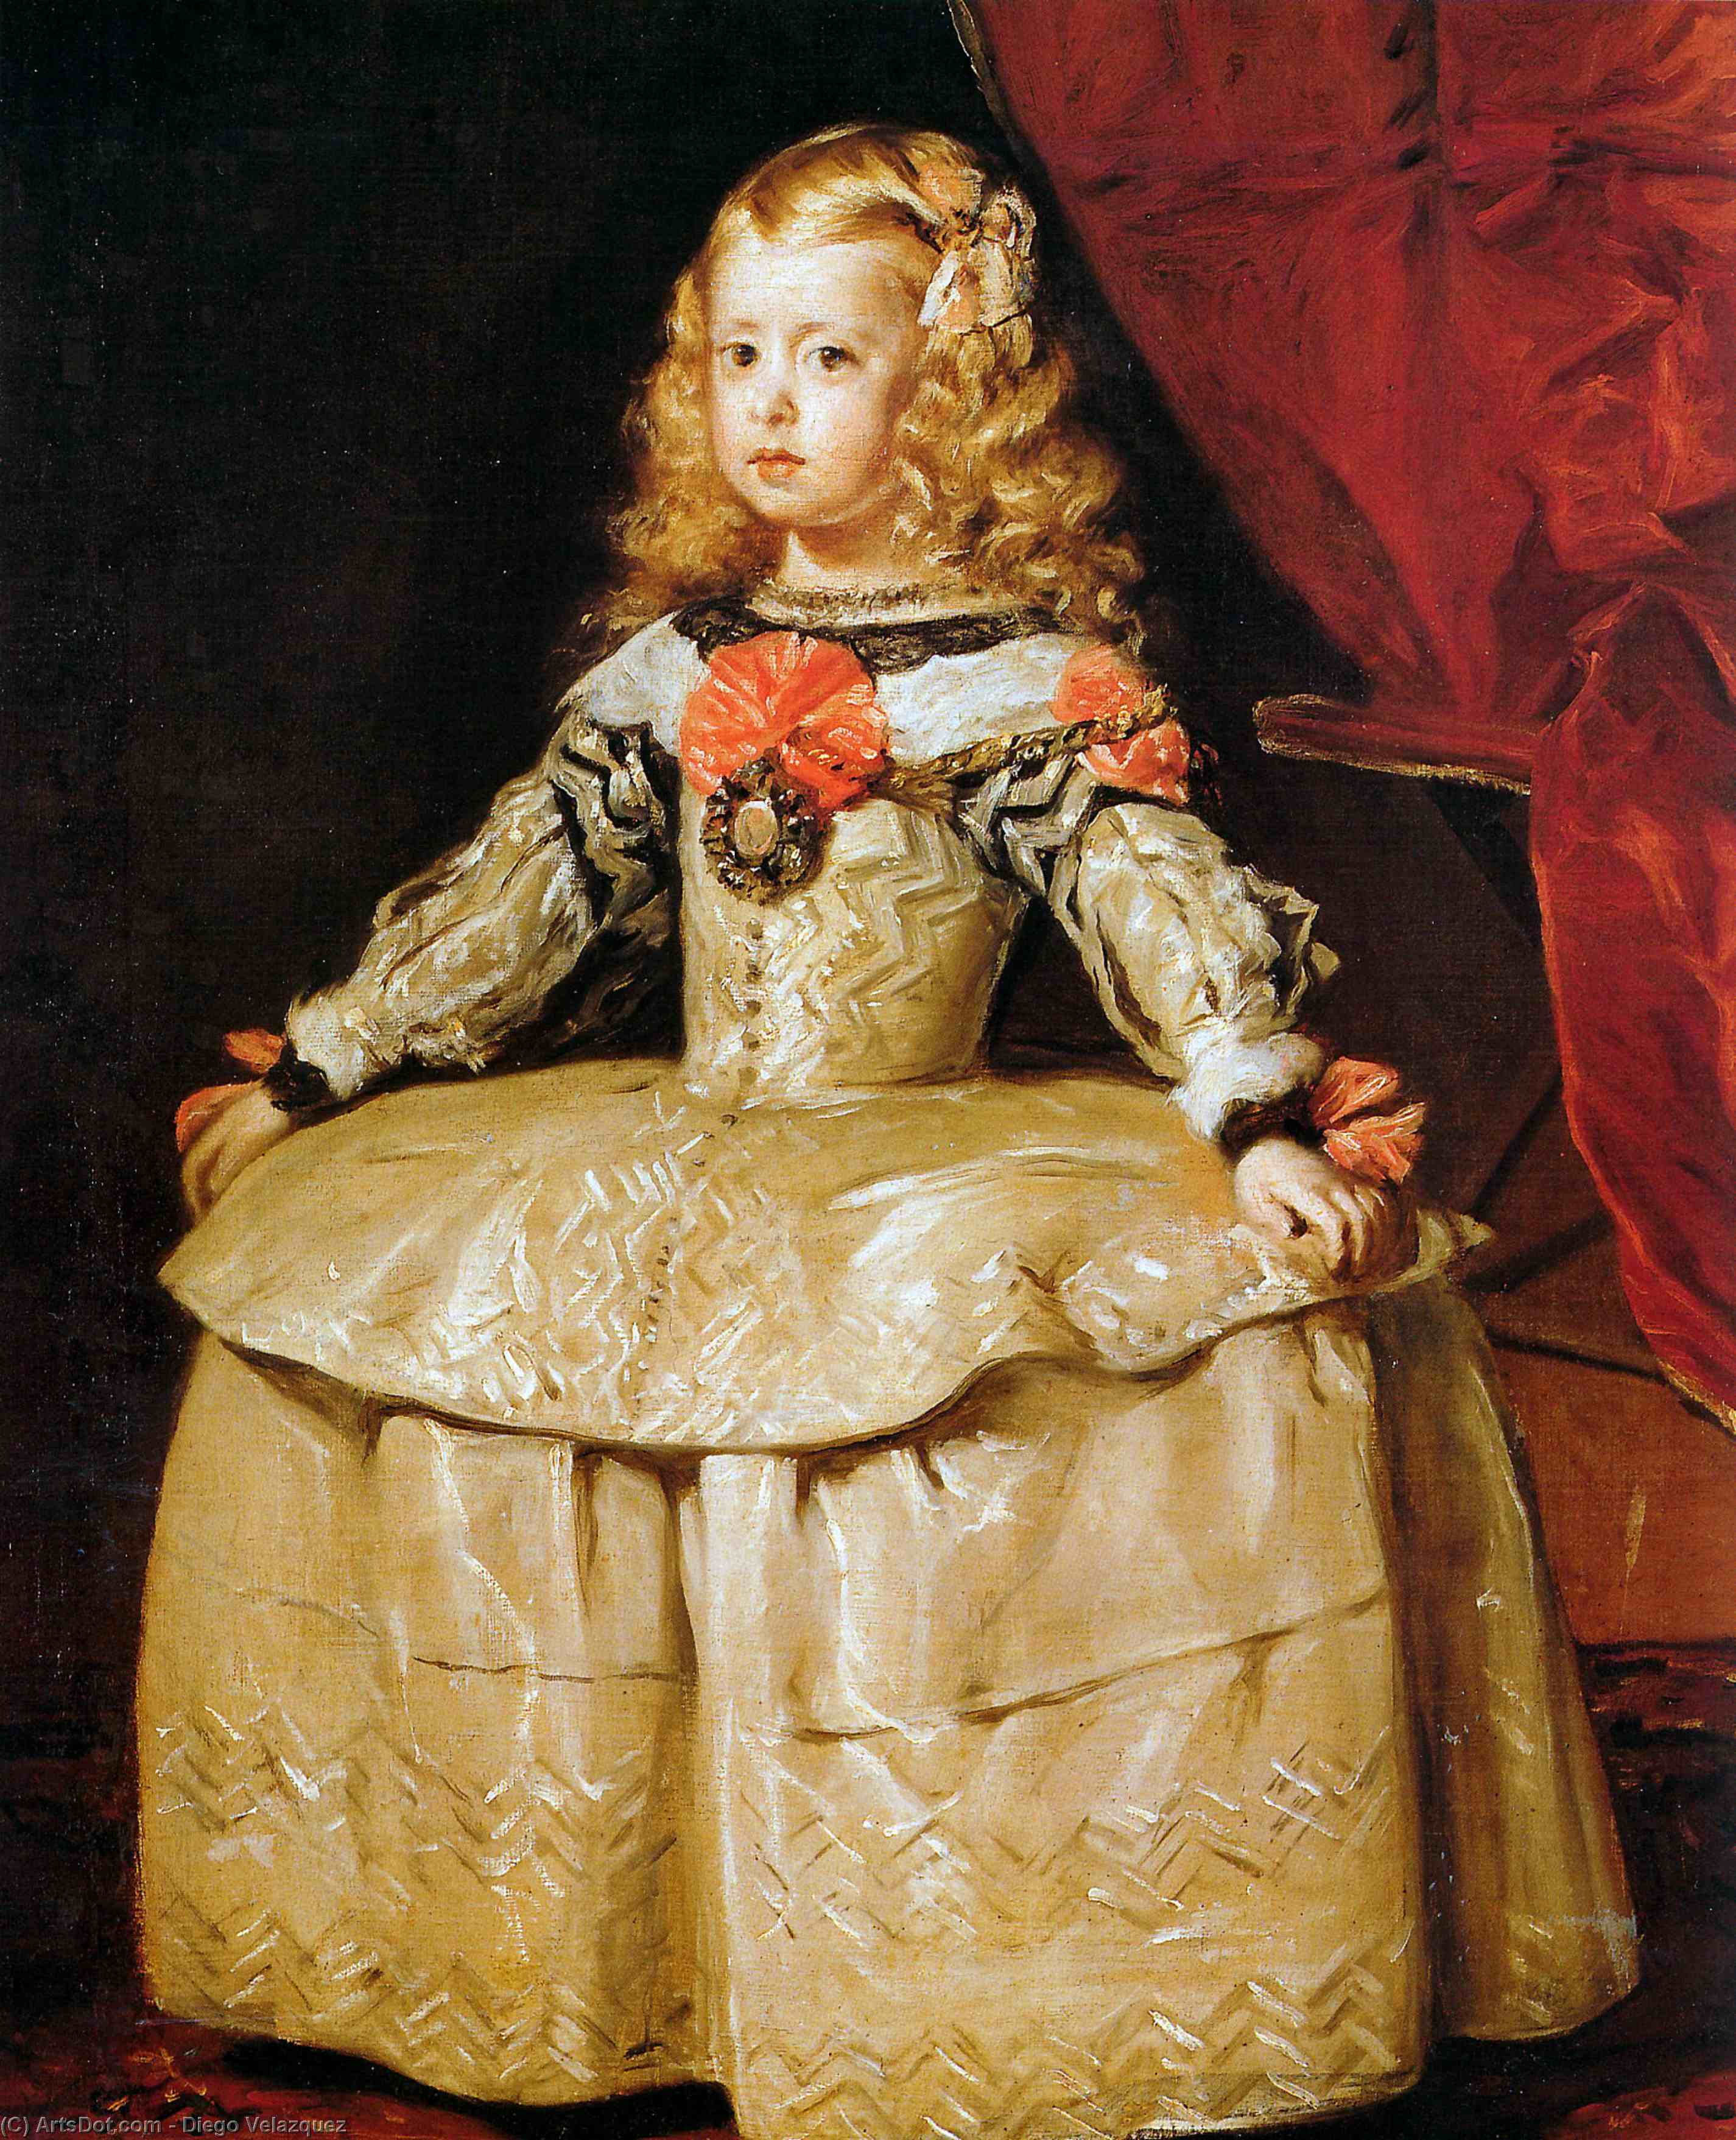 Portrait of the Infanta Margarita Aged Five, Oil On Canvas by Diego Velazquez (1599-1660, Spain)